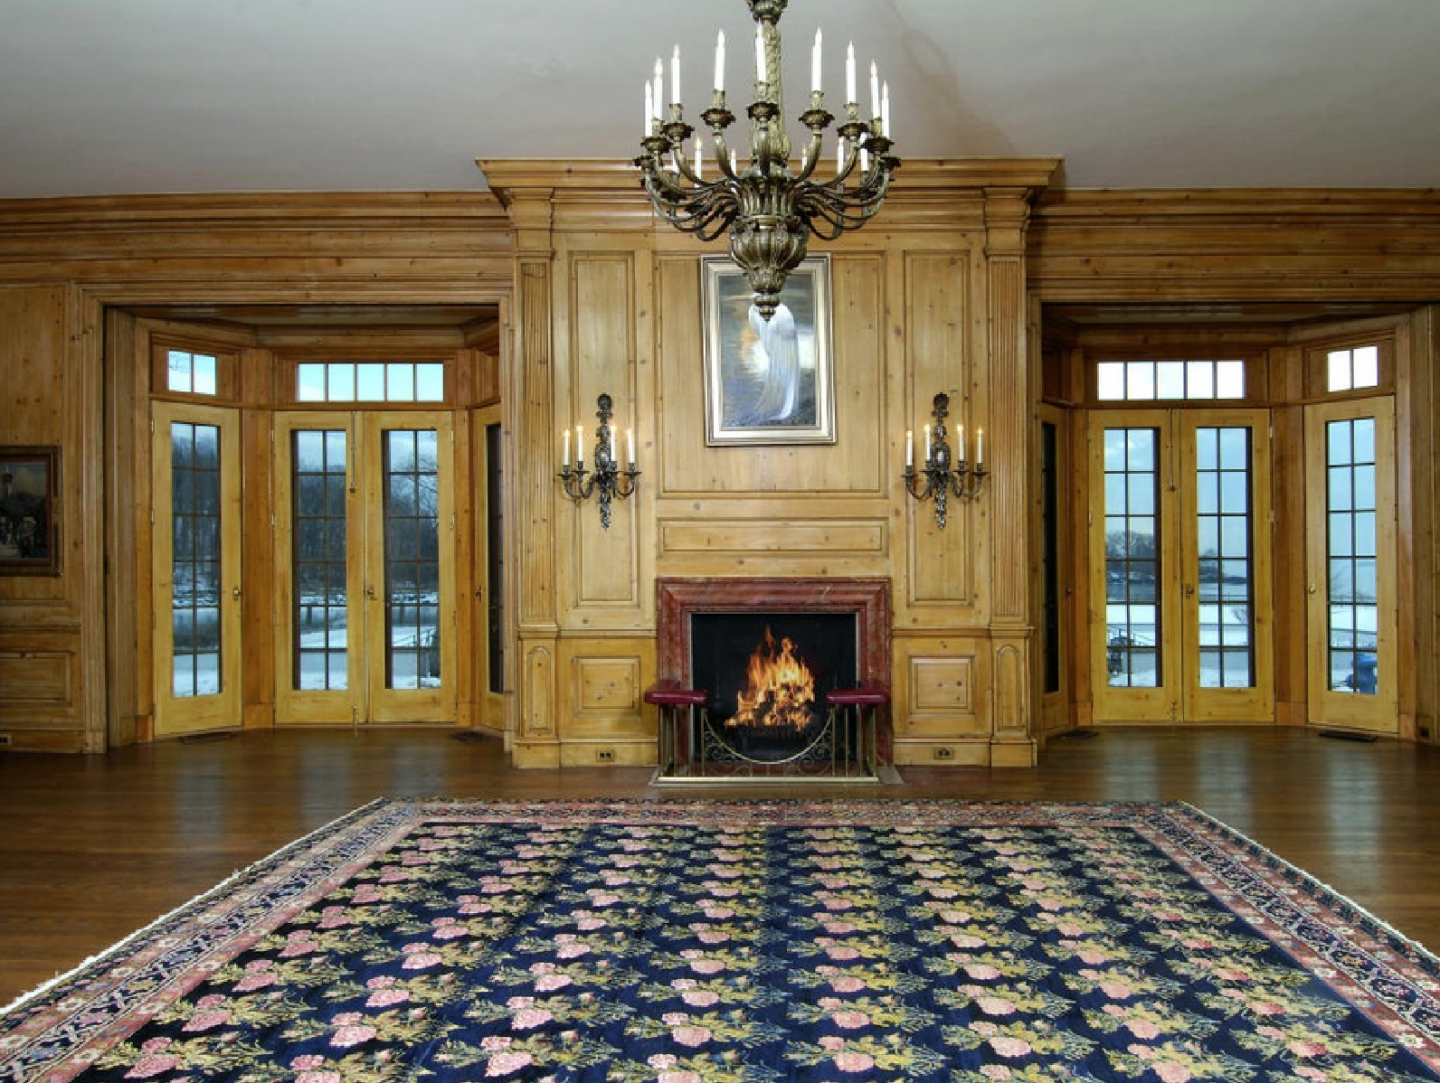 A great room featuring one of countless chandeliers throughout the mansion.